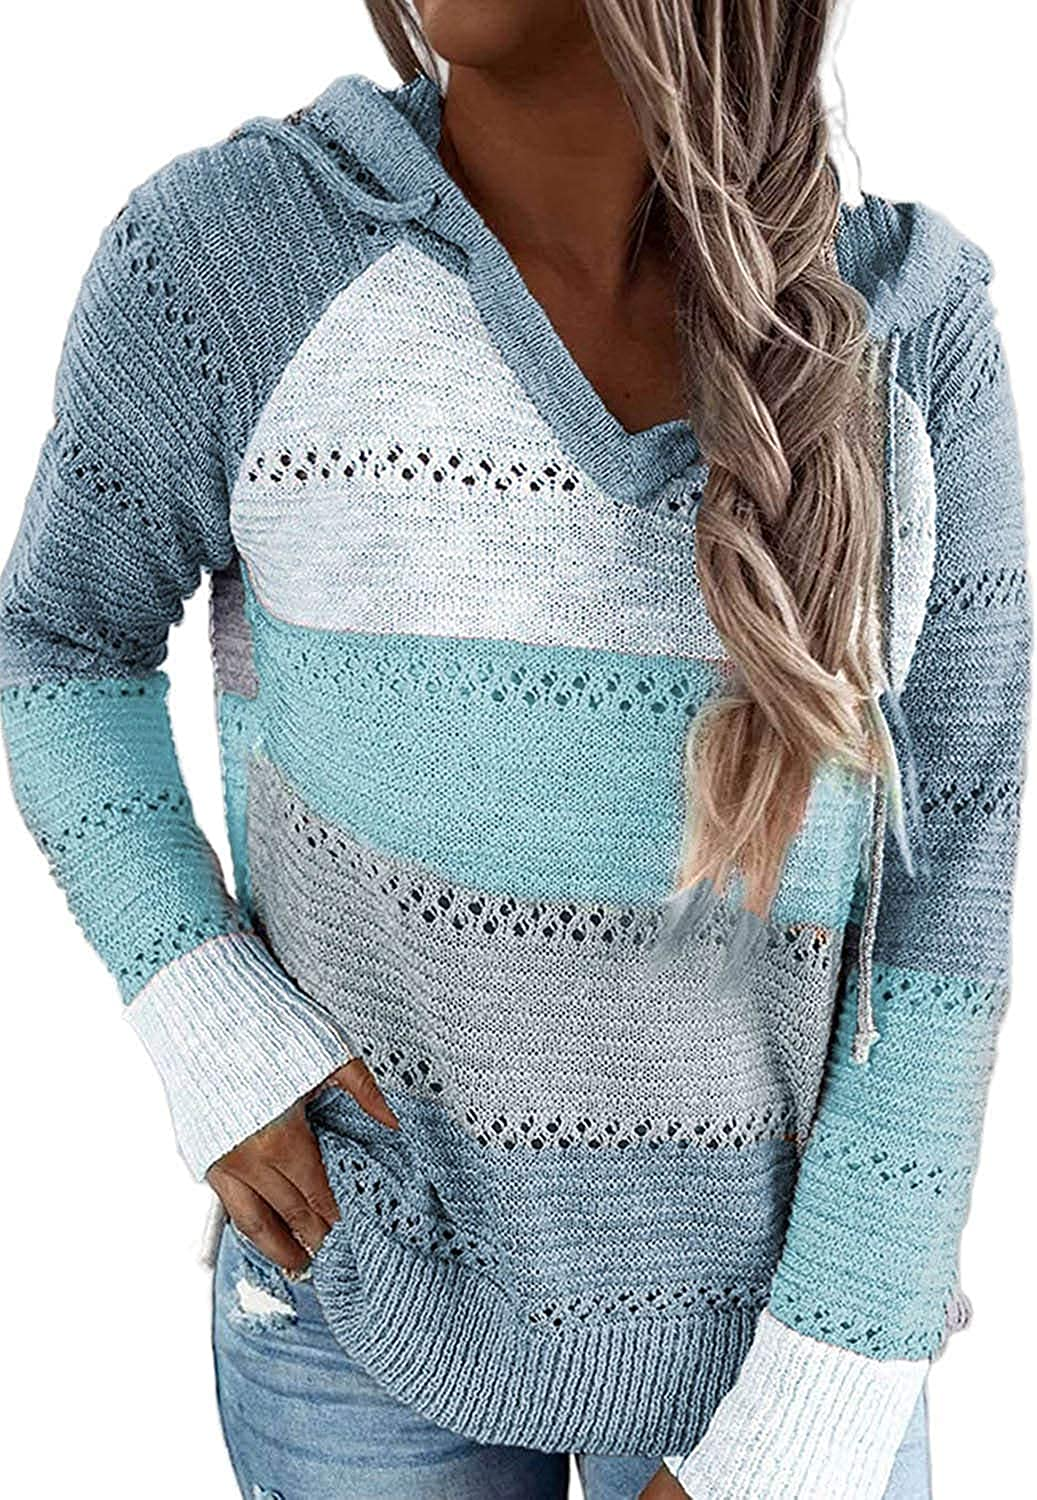 Uusollecy Women's Color Block Sweatshirts Hoodie Long Sleeve Knitted Pullover V-Neck Drawstring Sweater